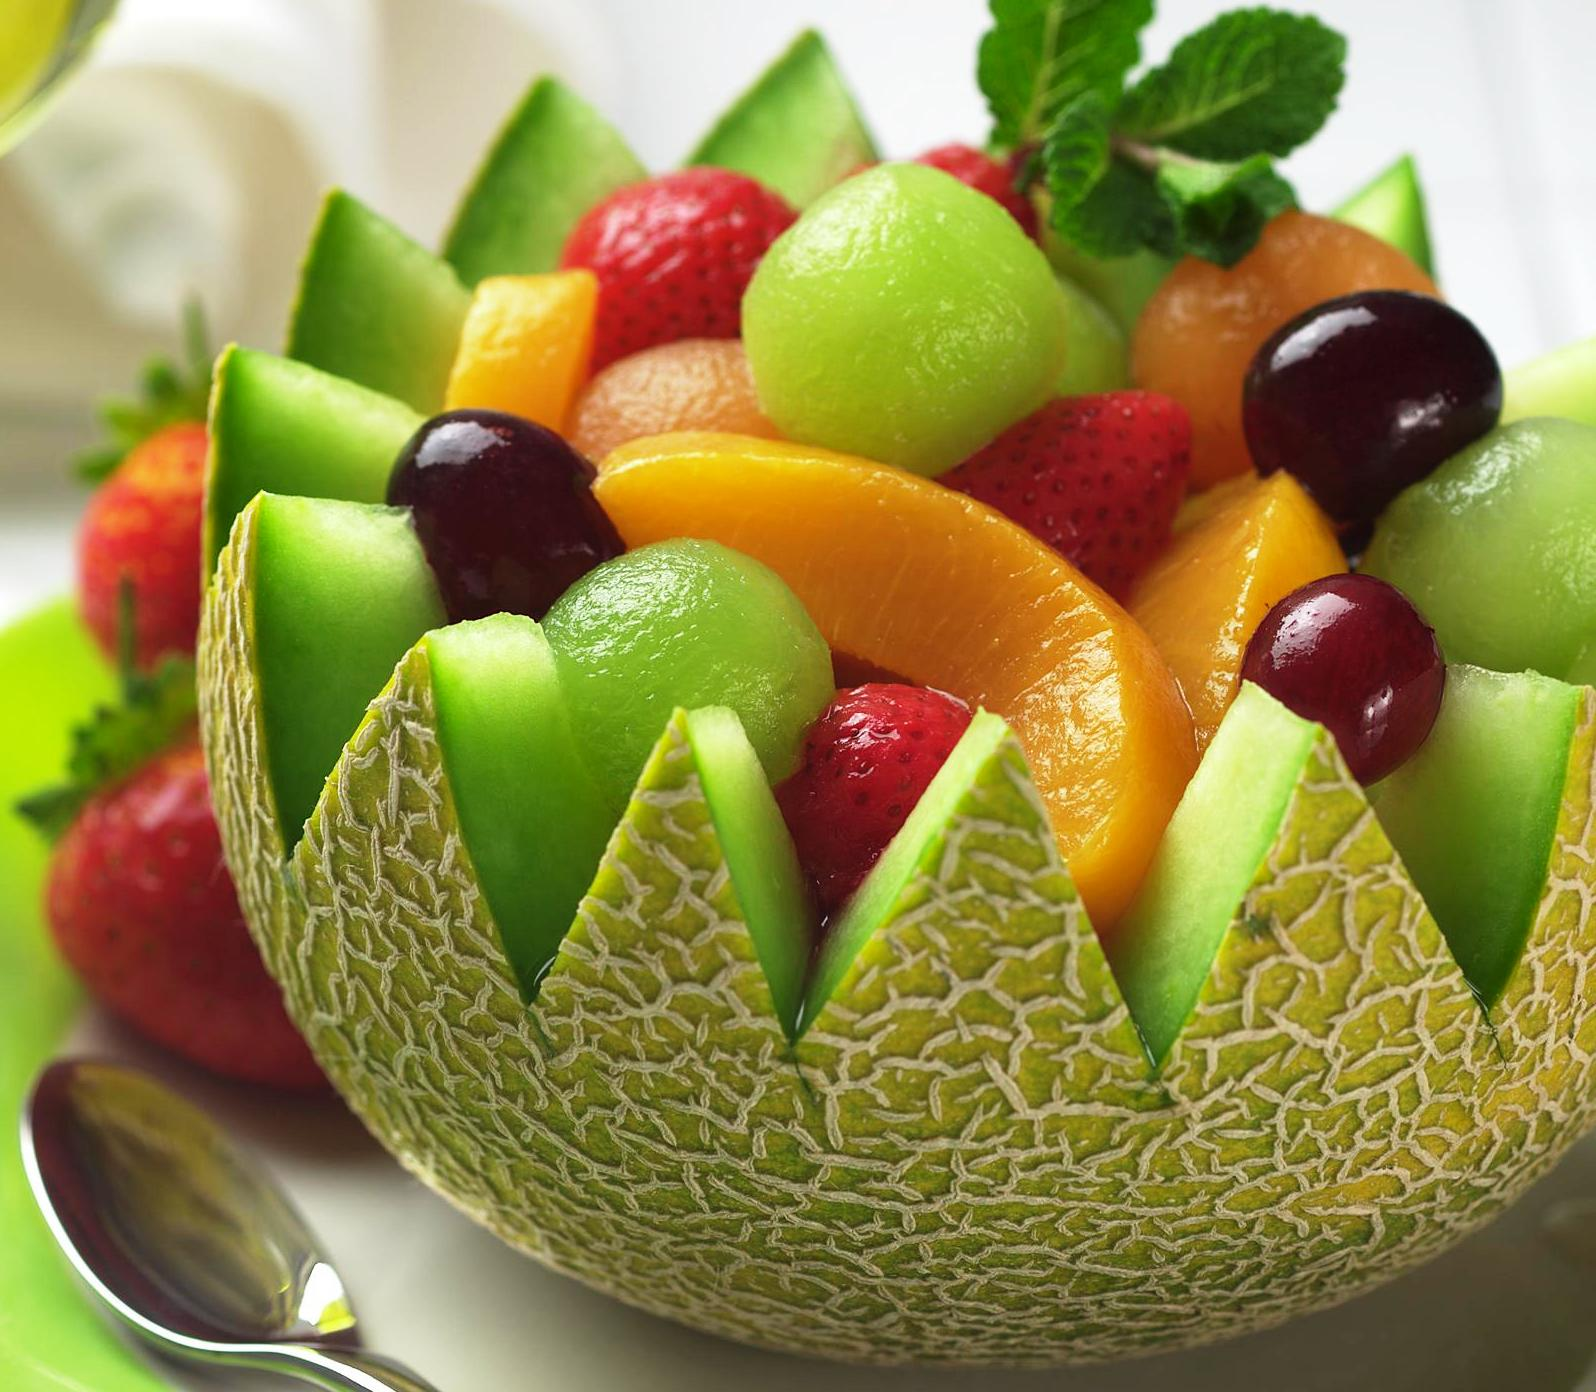 A Tropical Fruit Salad Is Always Popular